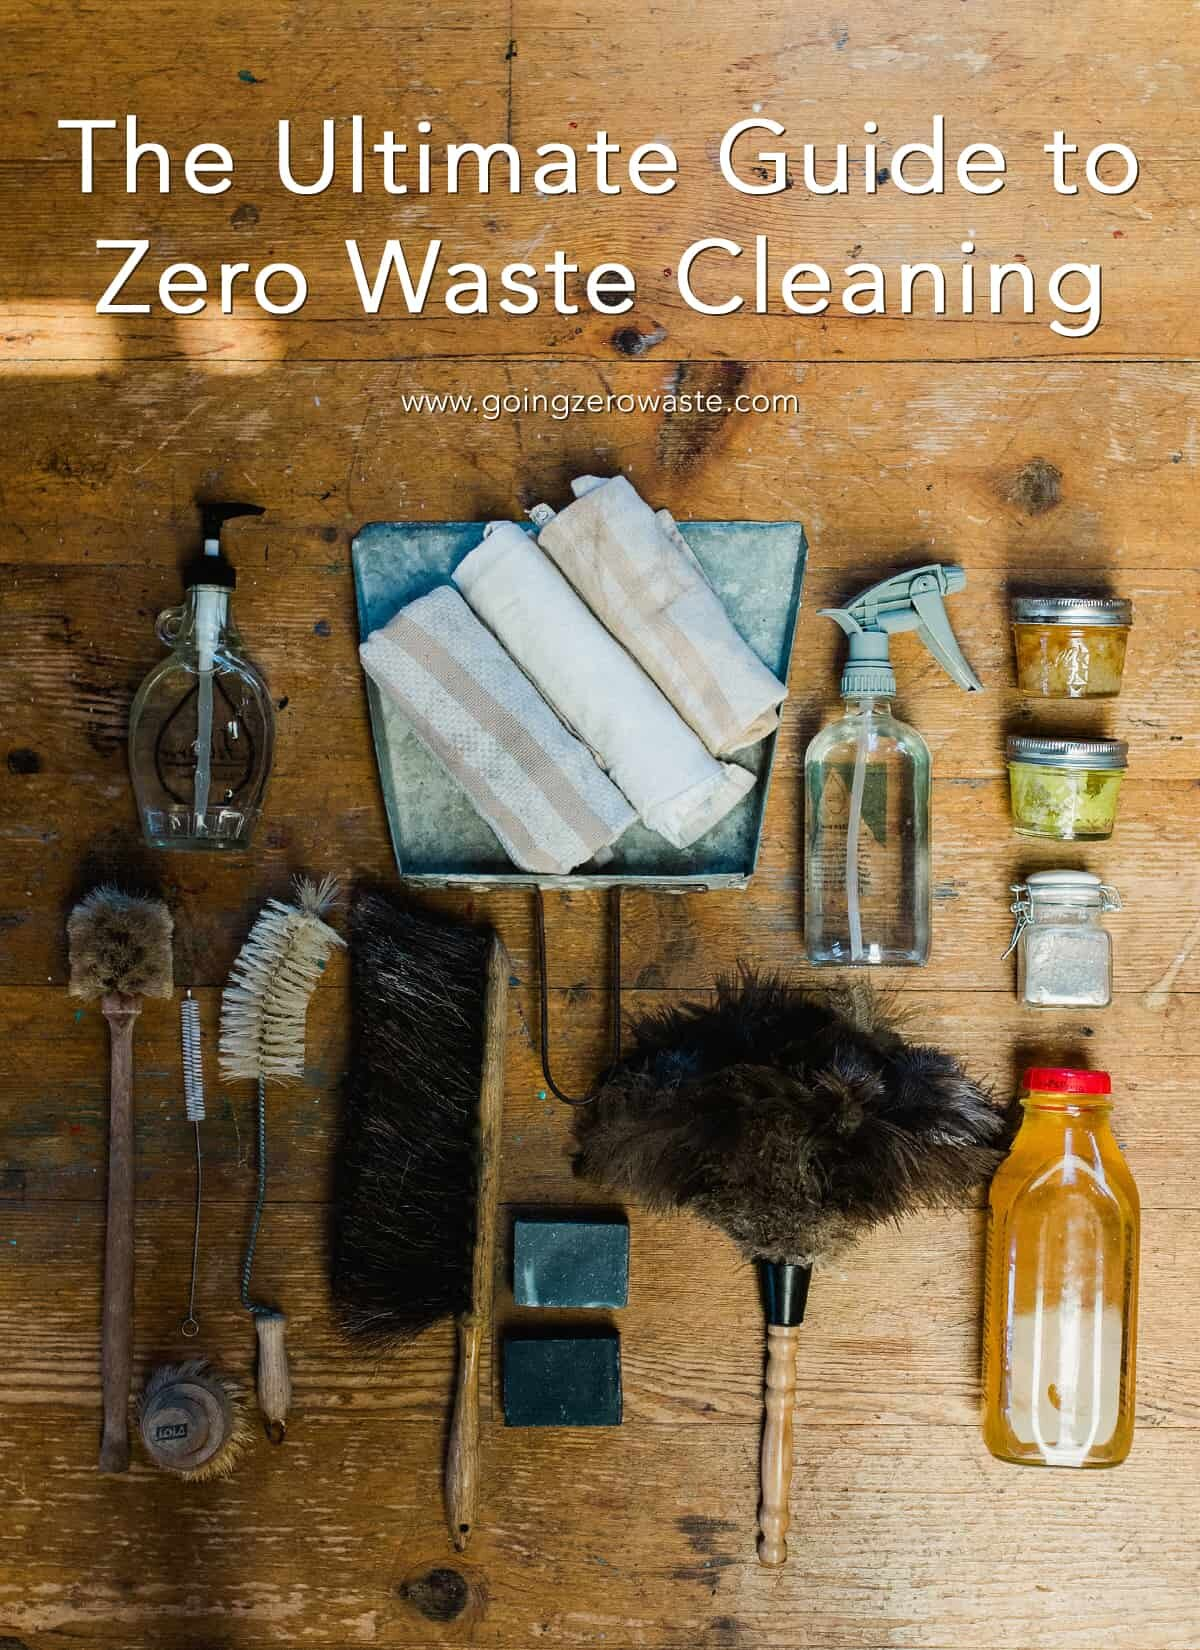 The Ultimate Guide to Zero Waste Cleaning